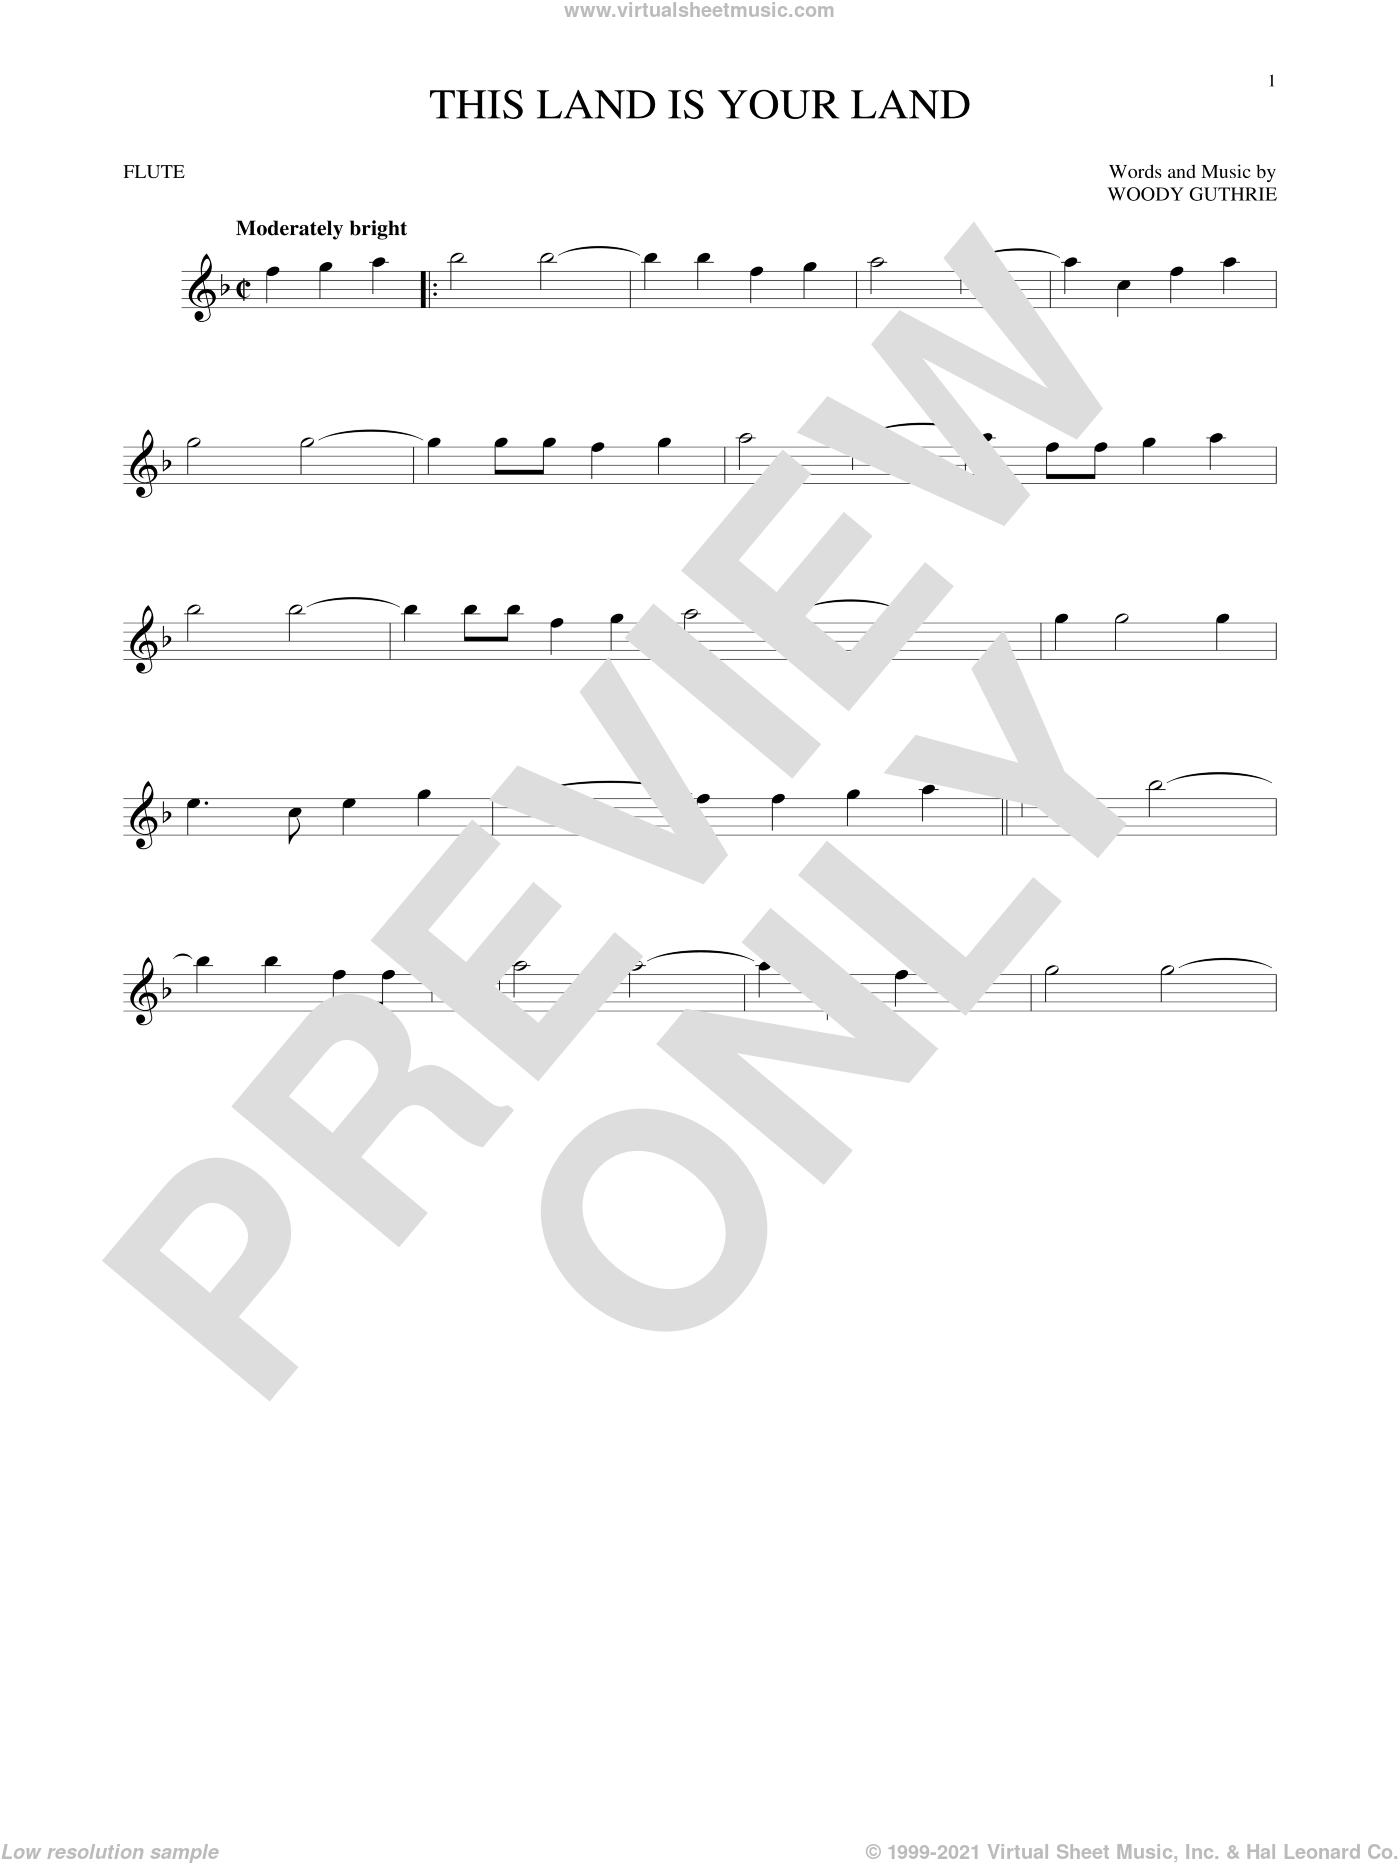 This Land Is Your Land sheet music for flute solo by Woody Guthrie. Score Image Preview.